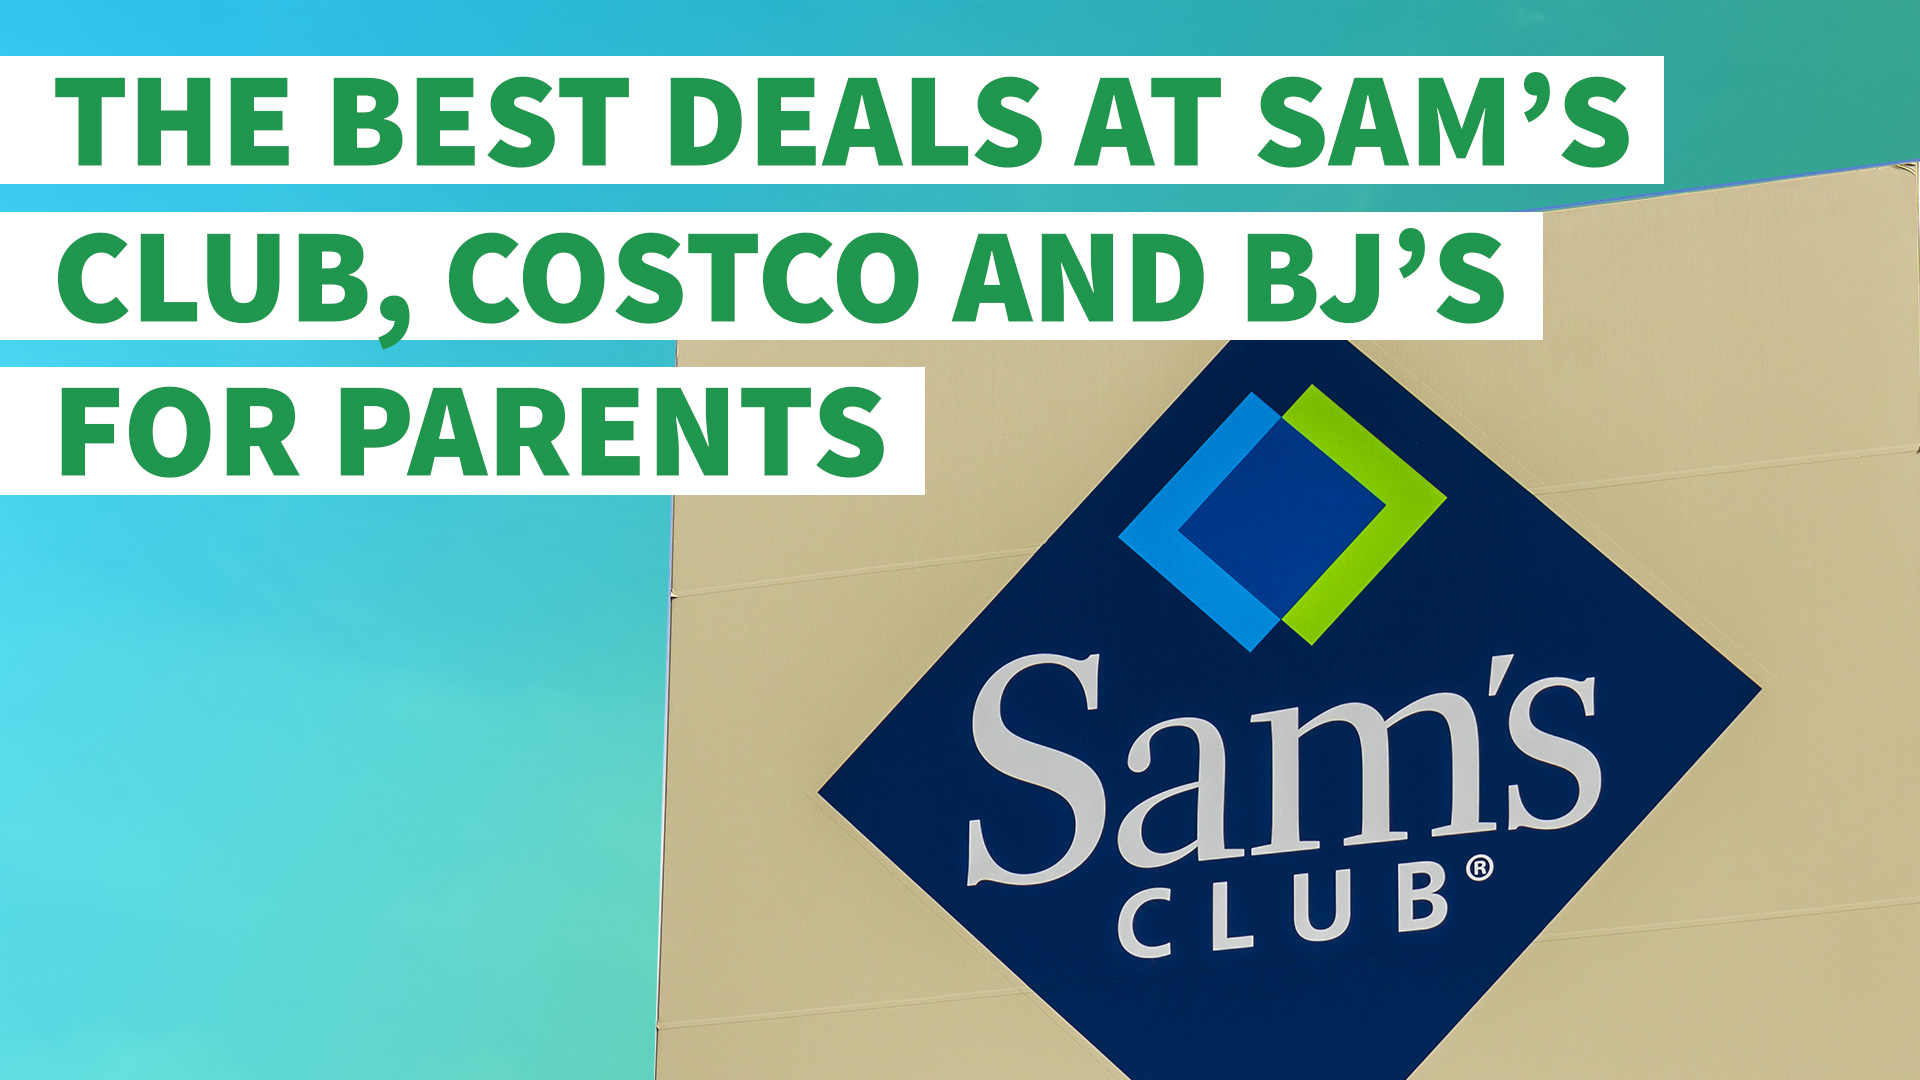 Sam s club credit card payment - The Best Deals At Sam S Club Costco And Bj S For Parents Gobankingrates